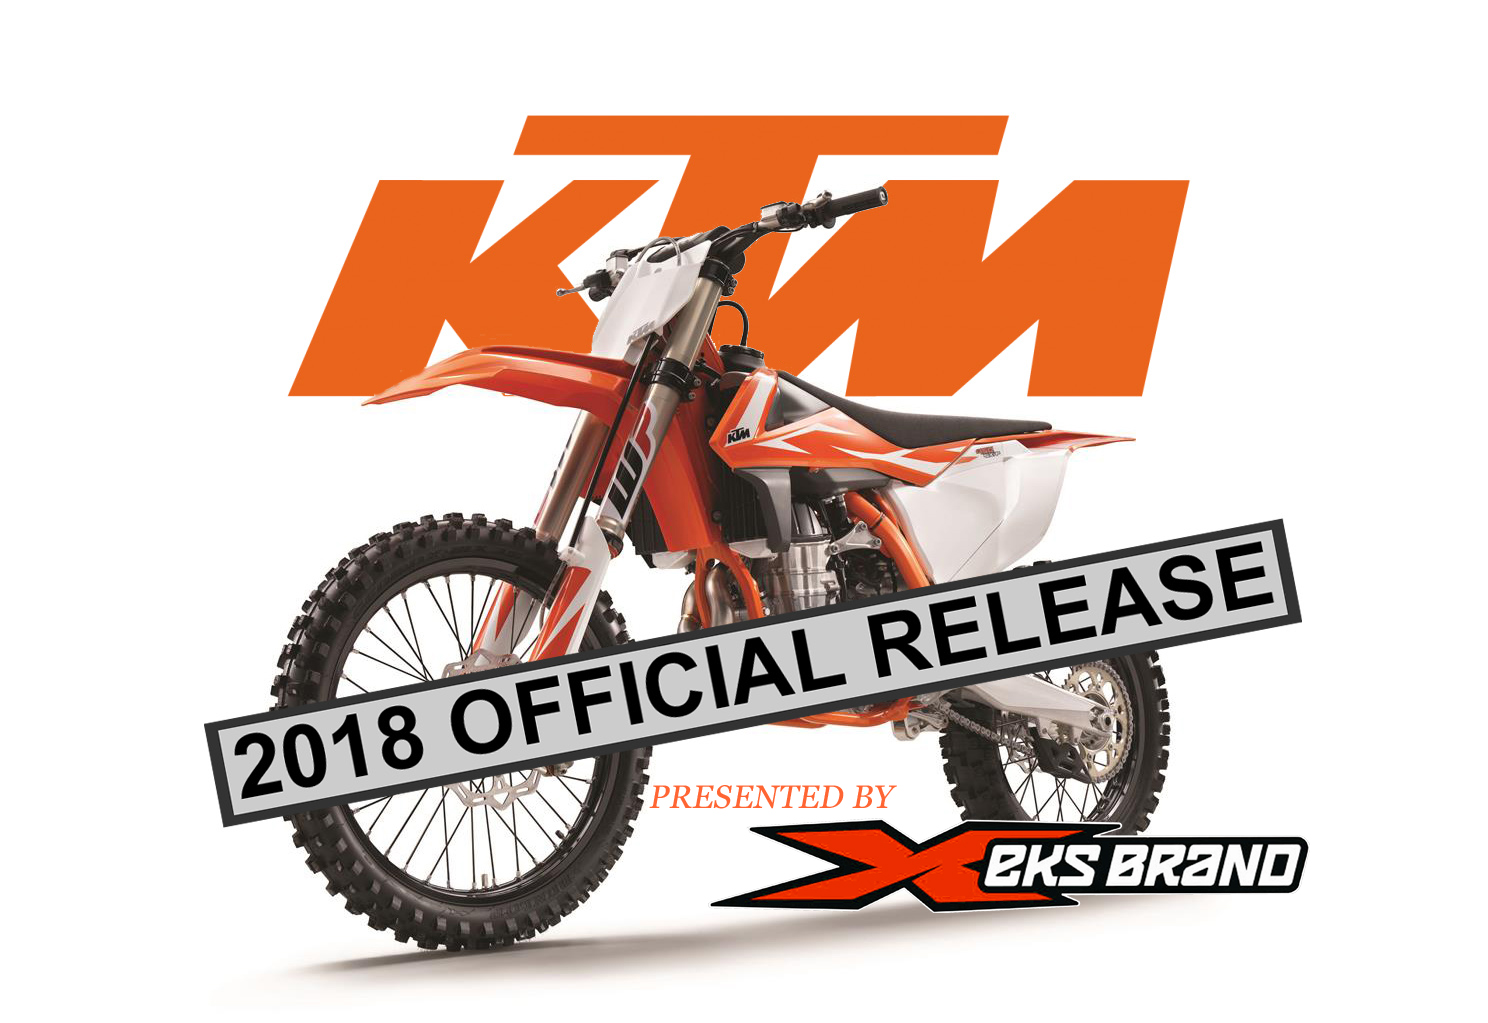 2018 ktm sx 85. contemporary ktm ktm official release  2018 motocross models on ktm sx 85 6